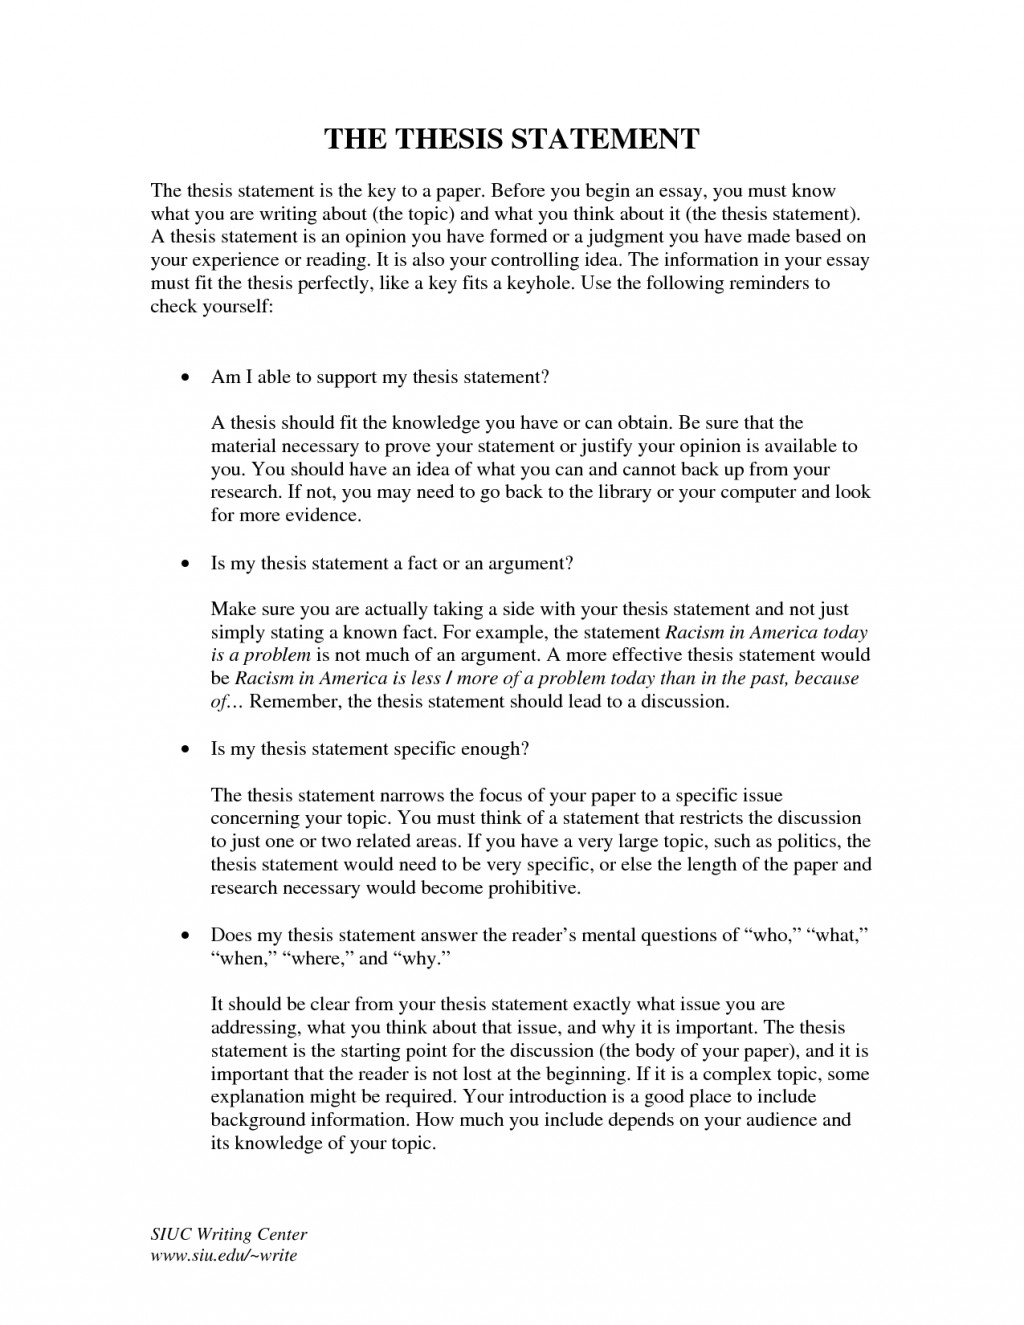 002 Essay Example Easy Imposing Topics Argumentative Without Research For High School Students Large